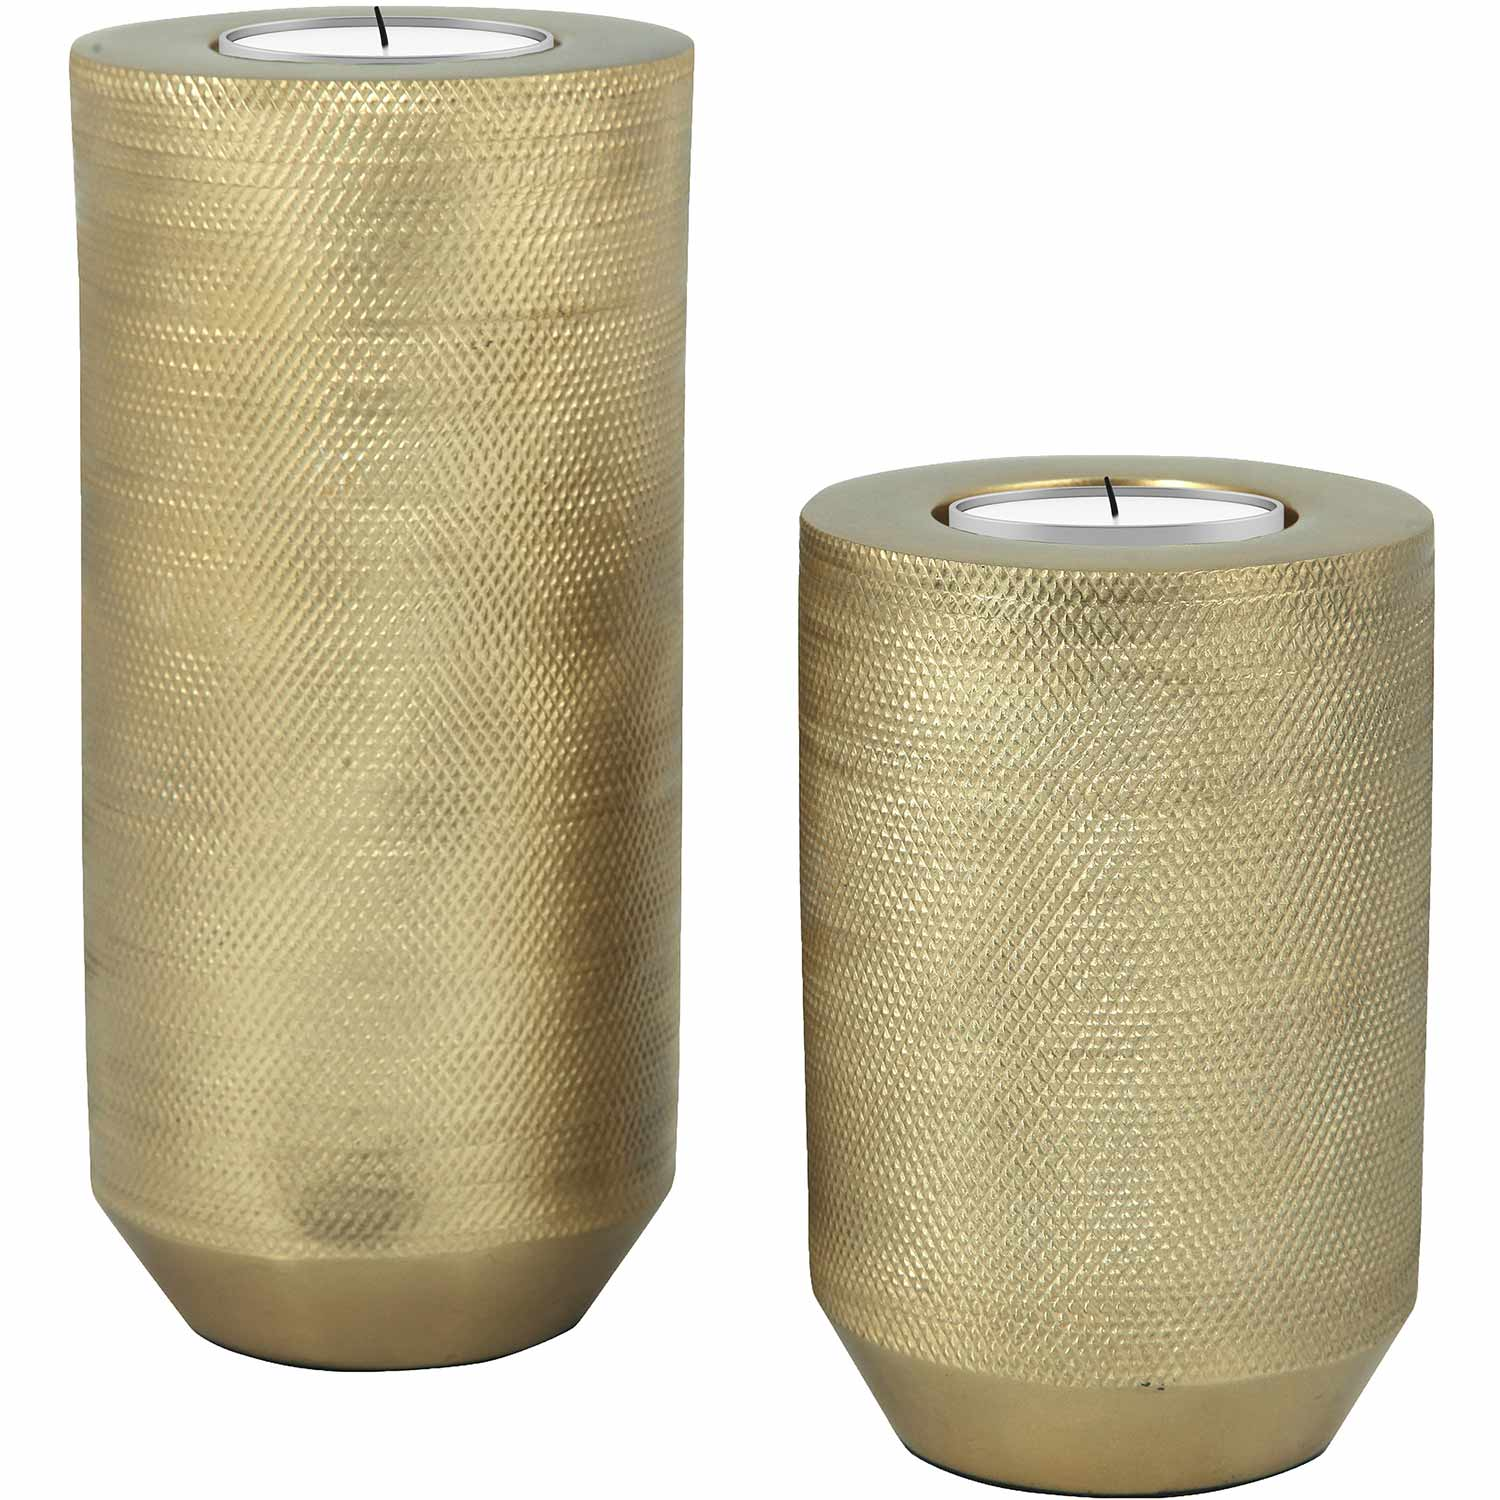 Ren-Wil Felicity Candle Holder - Gold EPL